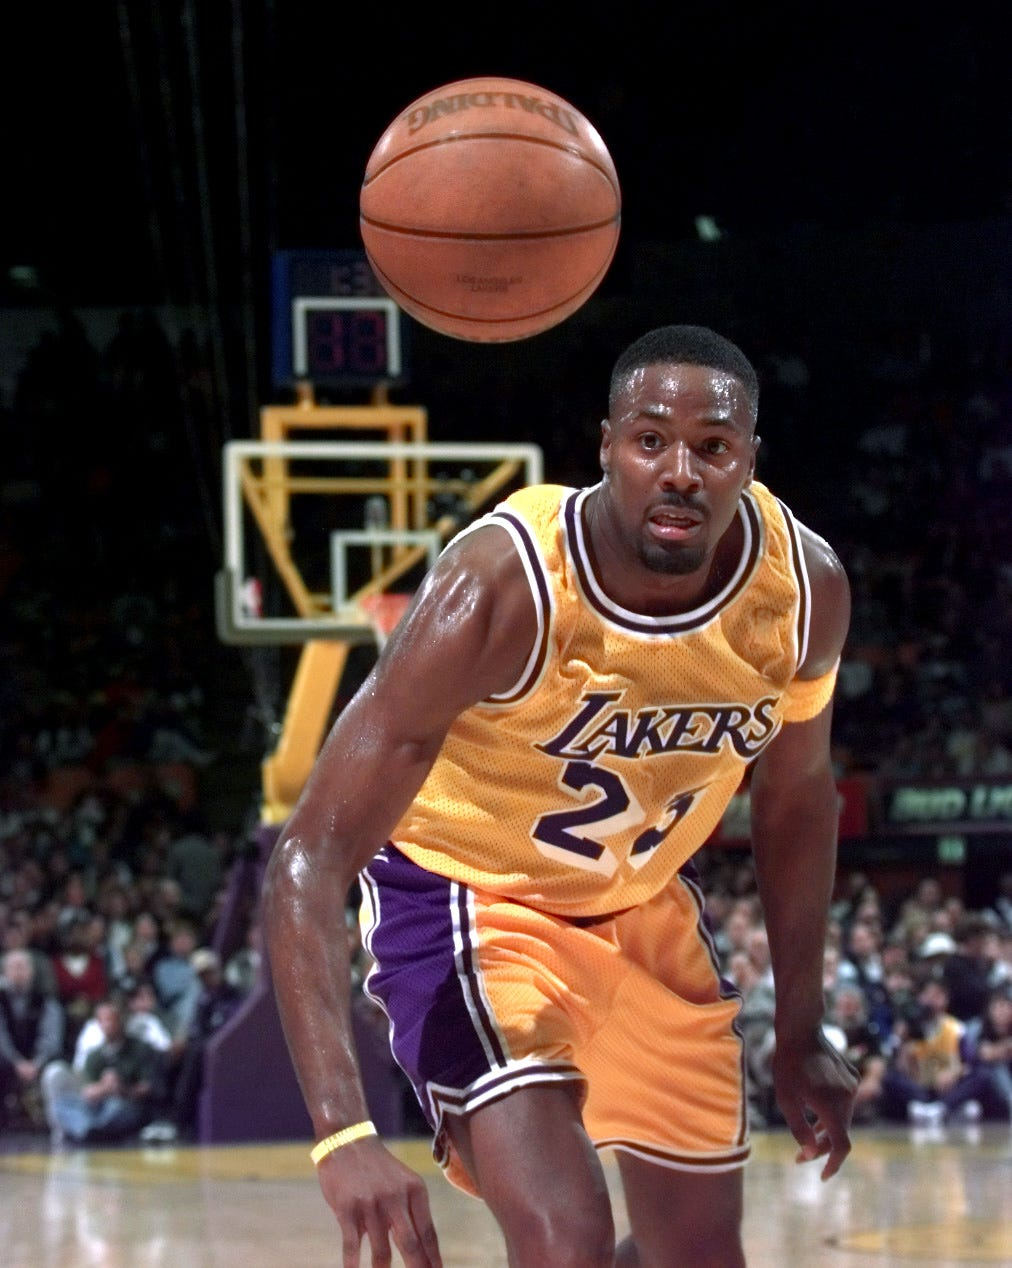 Ex-NBA player Cedric Ceballos asks for prayers as he battles COVID-19 in intensive care unit